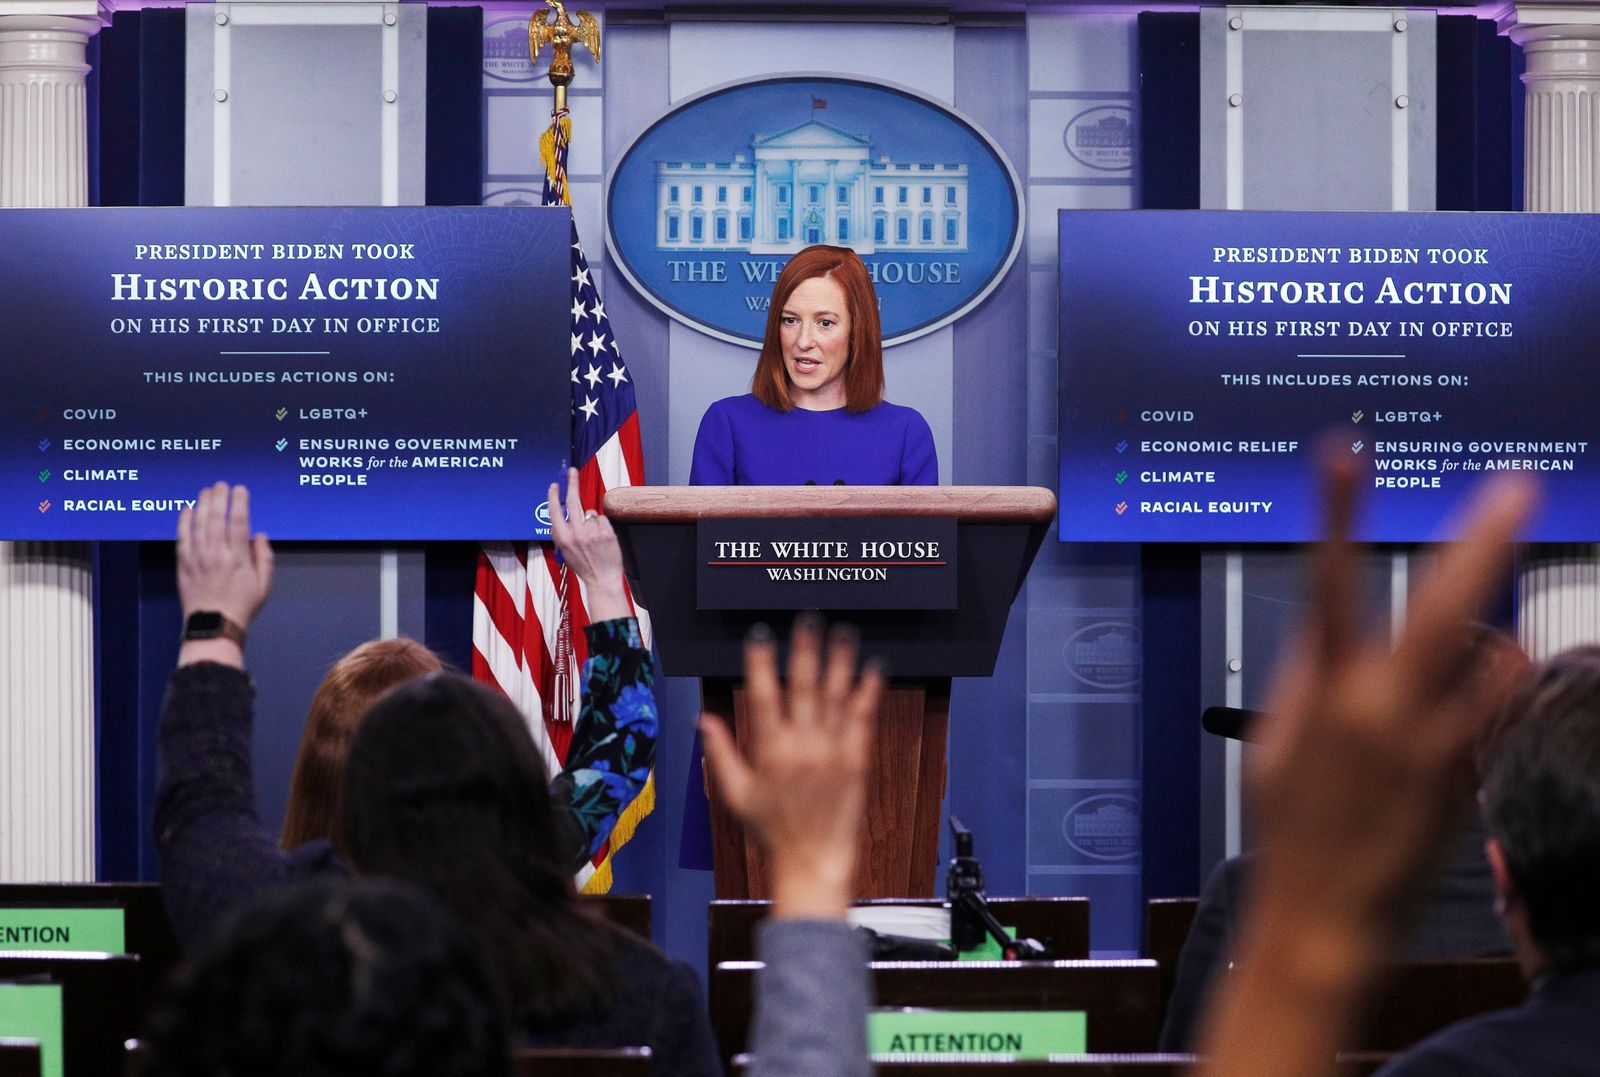 White House Press Secretary Jen Psaki speaks in the James S Brady Press Briefing Room at the White House, after the inauguration of Joe Biden as the 46th President of the United States